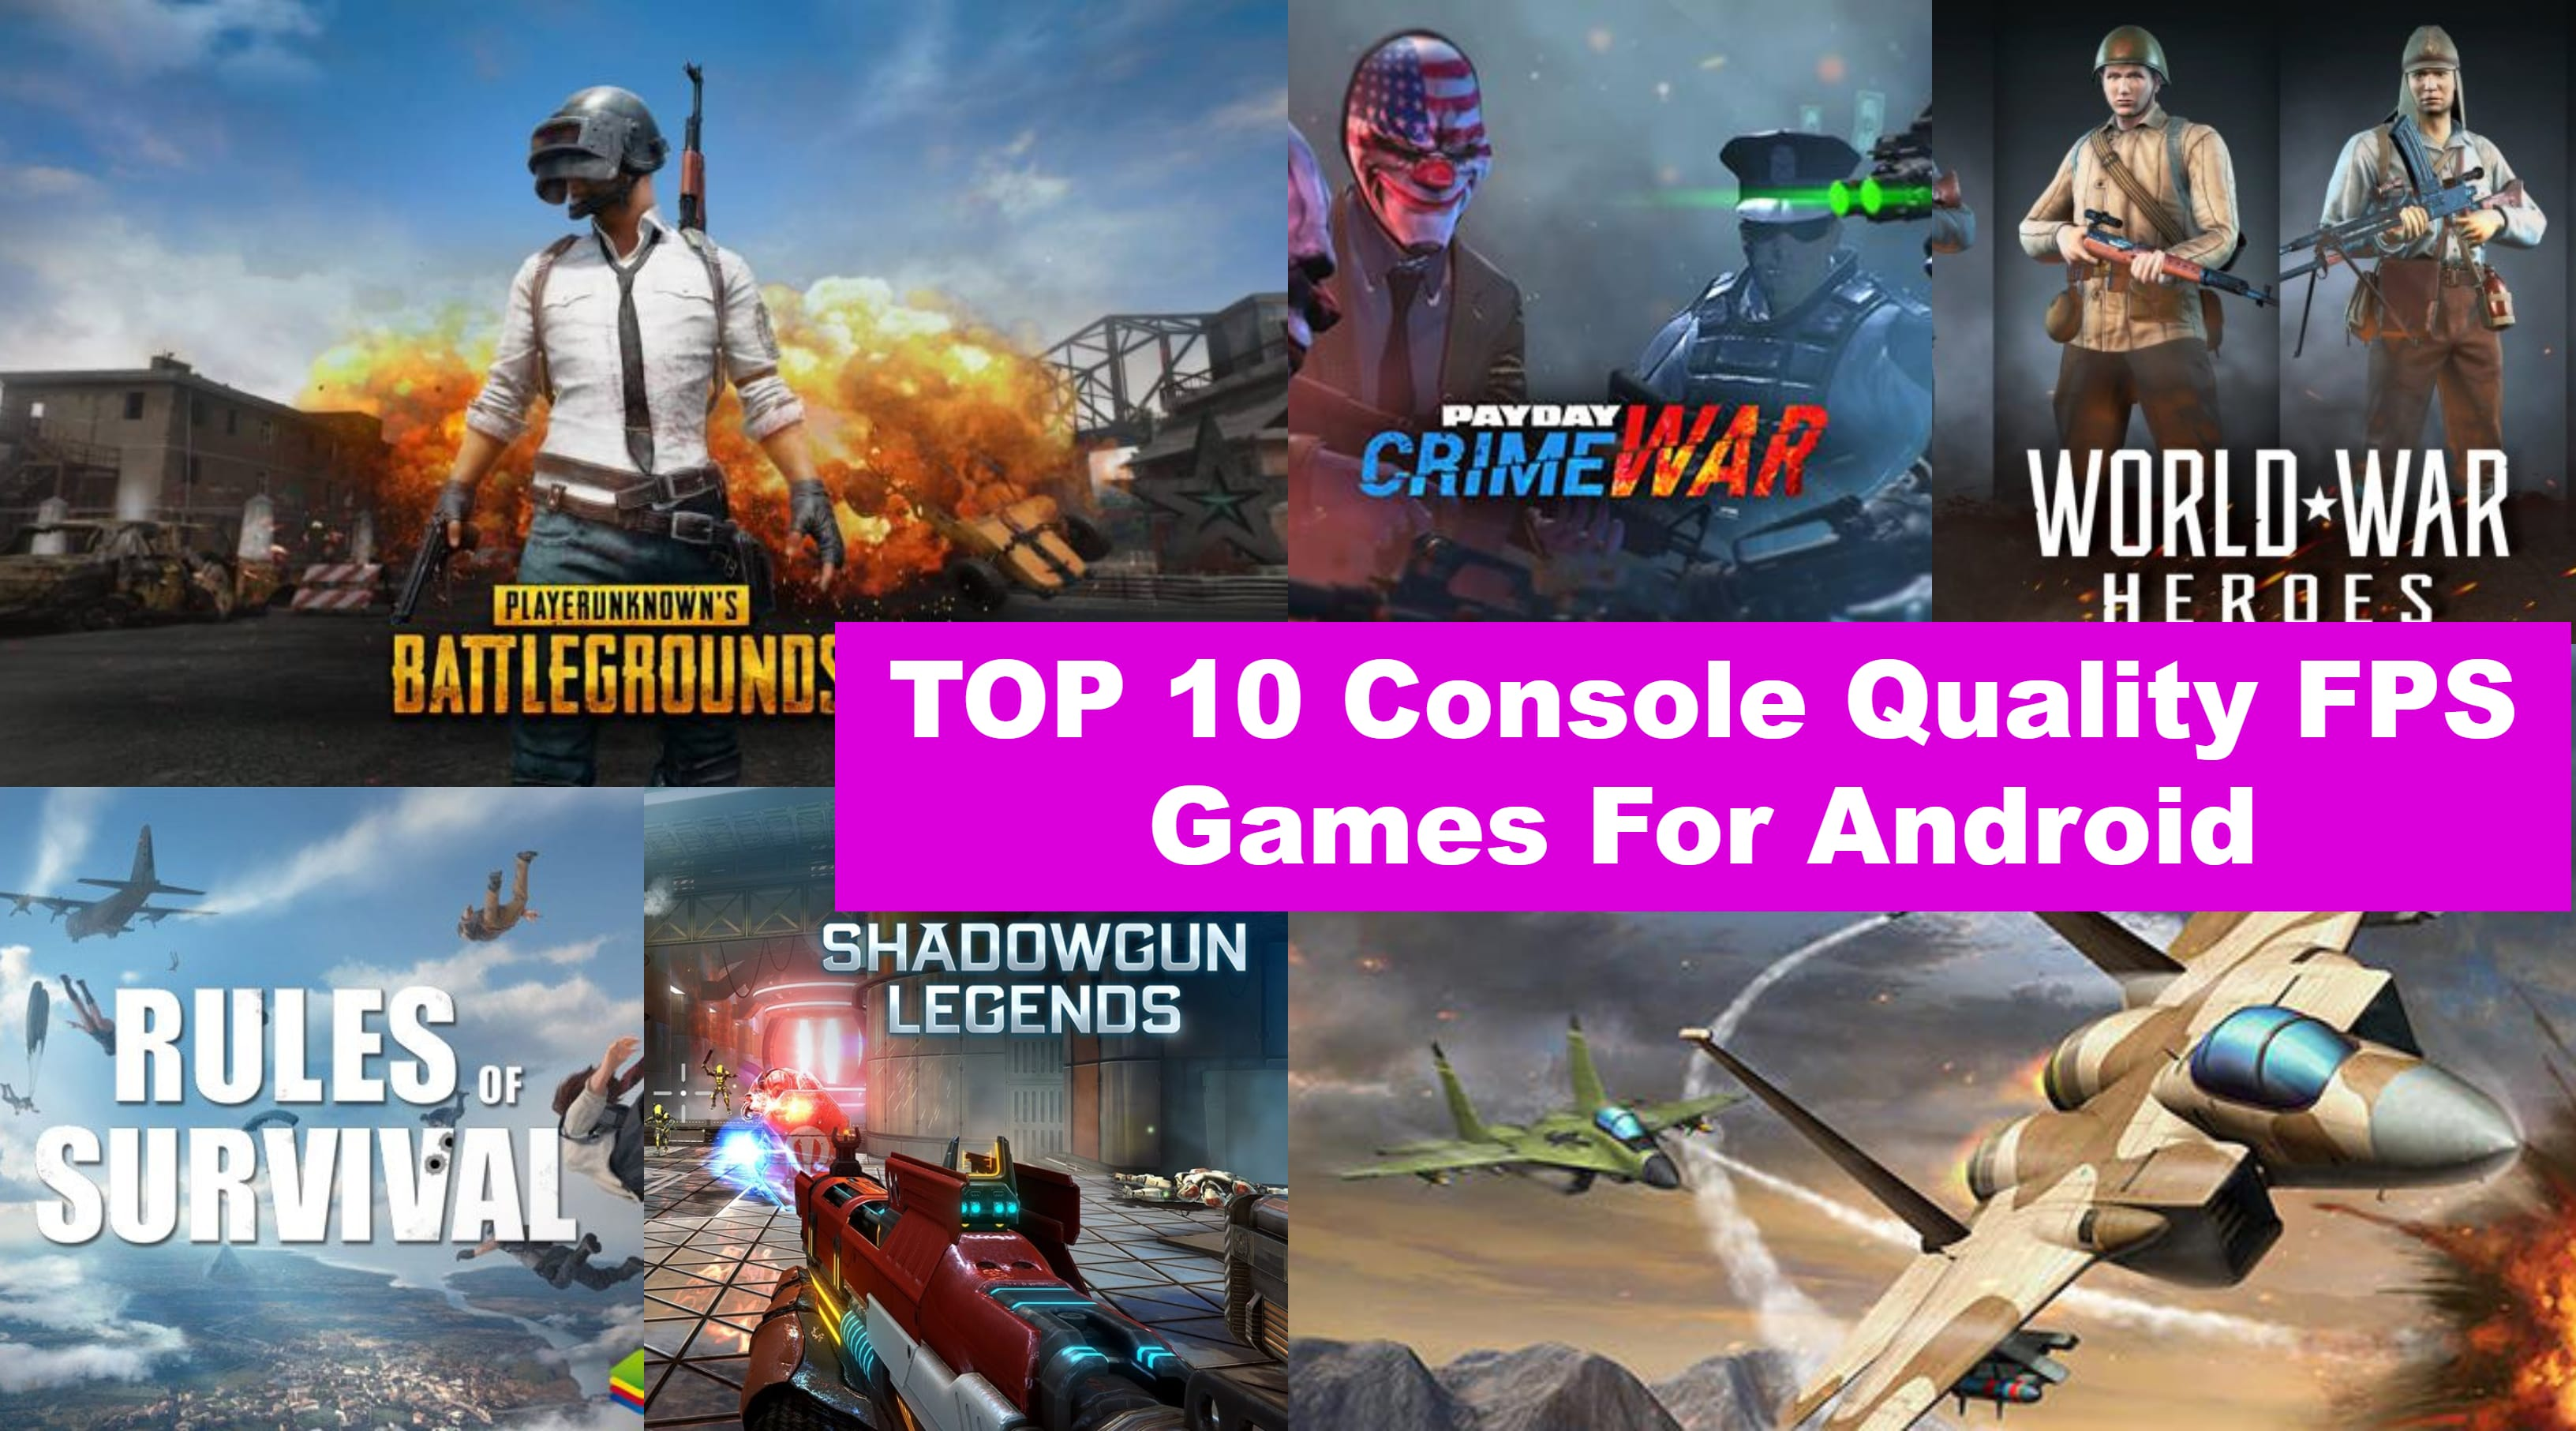 TOP 10 Console Quality FPS Games For Android In 2018